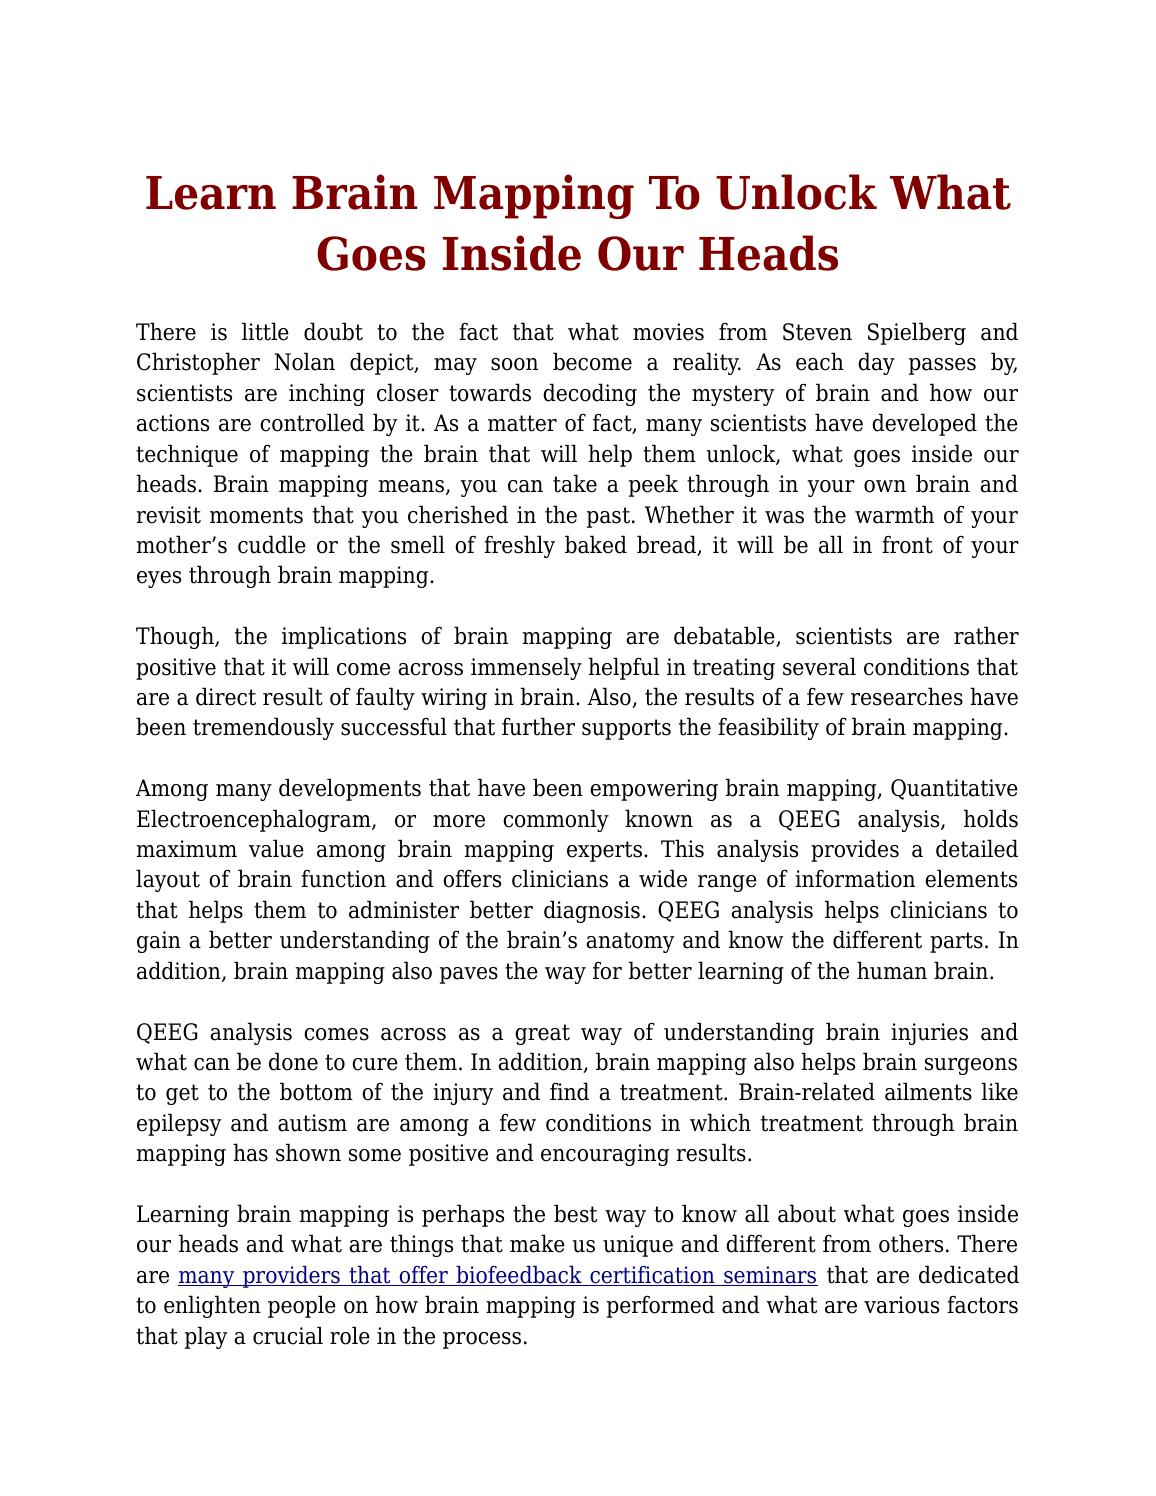 Learn Brain Mapping To Unlock What Goes Inside Our Heads By Lucy